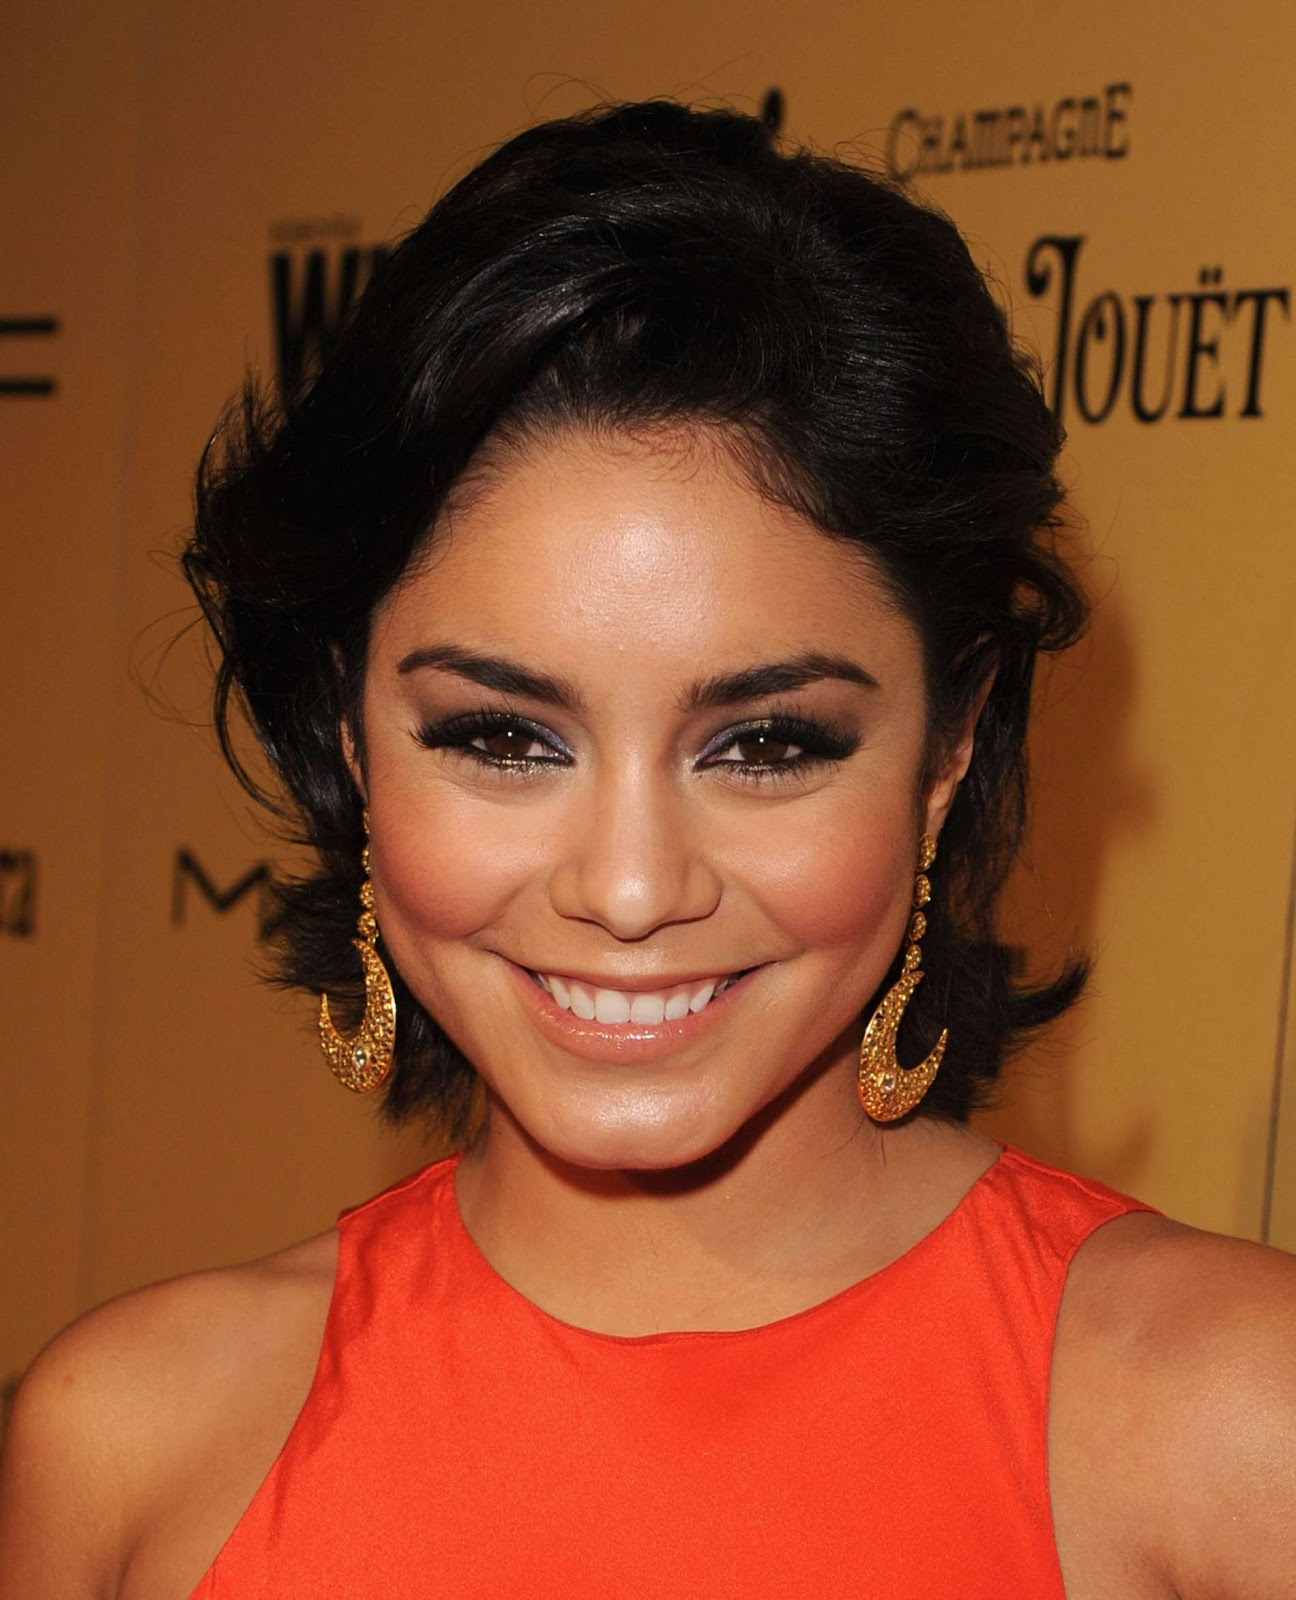 http://2.bp.blogspot.com/-RywIiVLiQTA/UJbGFH7vajI/AAAAAAAABUA/WCQGef6G2qk/s1600/Vanessa+Hudgens+hot+at+Women+In+Film+Pre+Oscar+Cocktail+Party+2012-02.jpg